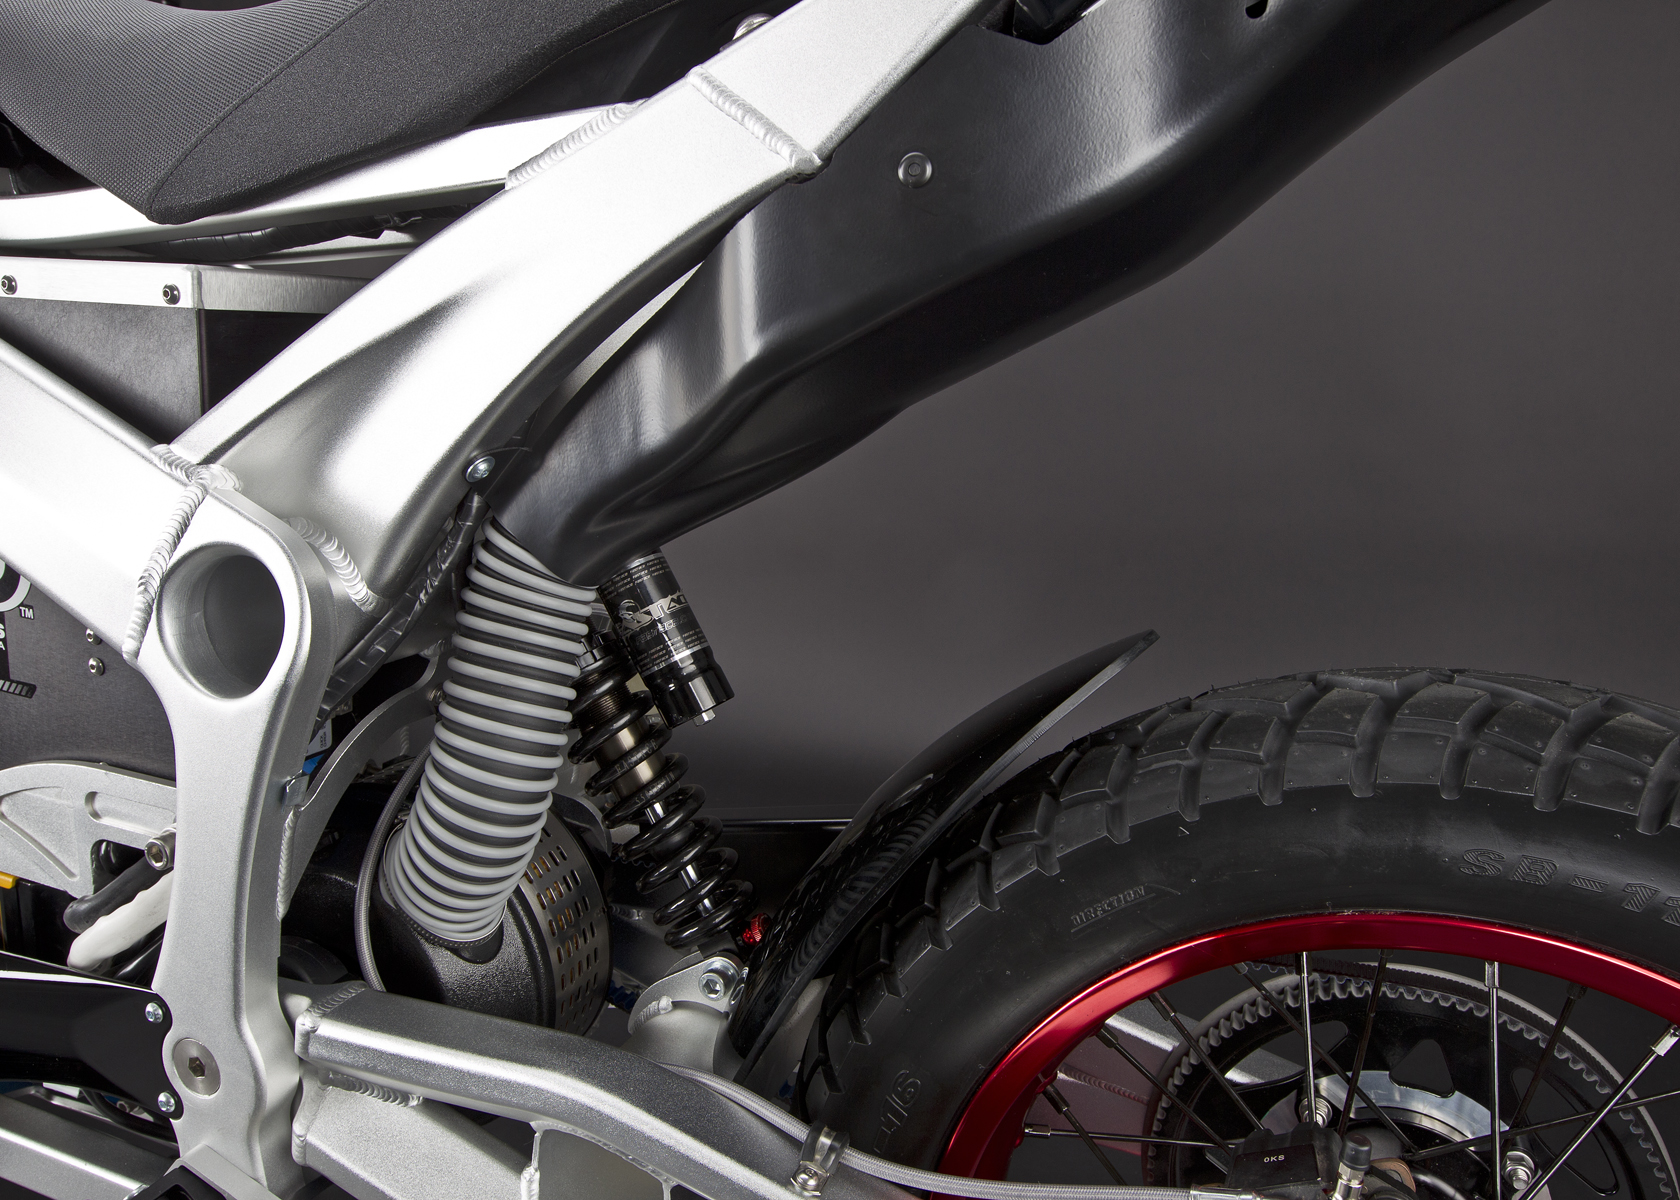 2011 Zero DS Electric Motorcycle: Air Induction